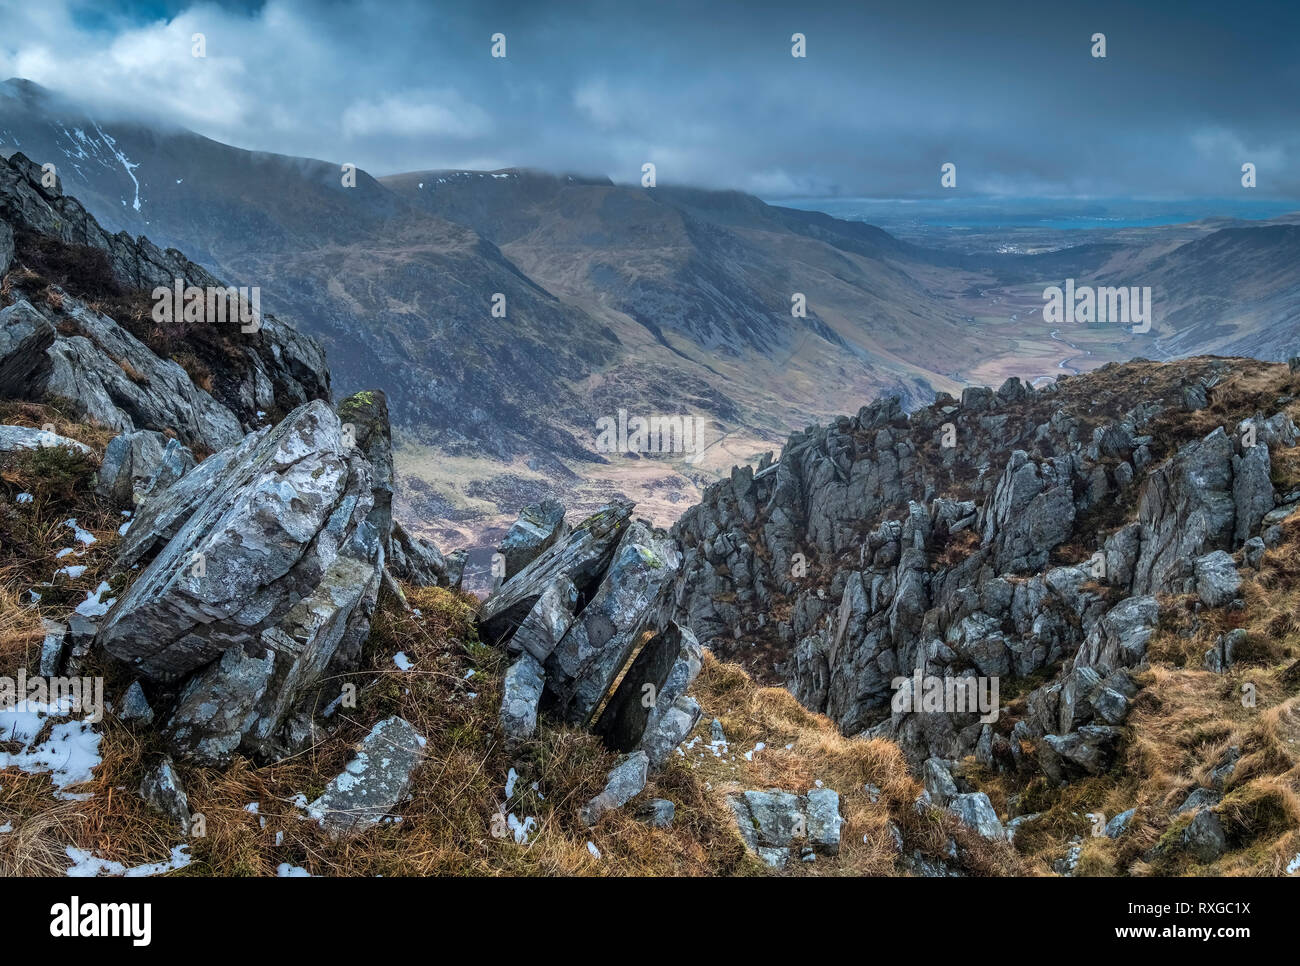 The Glyderau Mountains & Nant Ffrancon Valley from Y Gribin, Snowdonia National Park, North Wales, UK - Stock Image